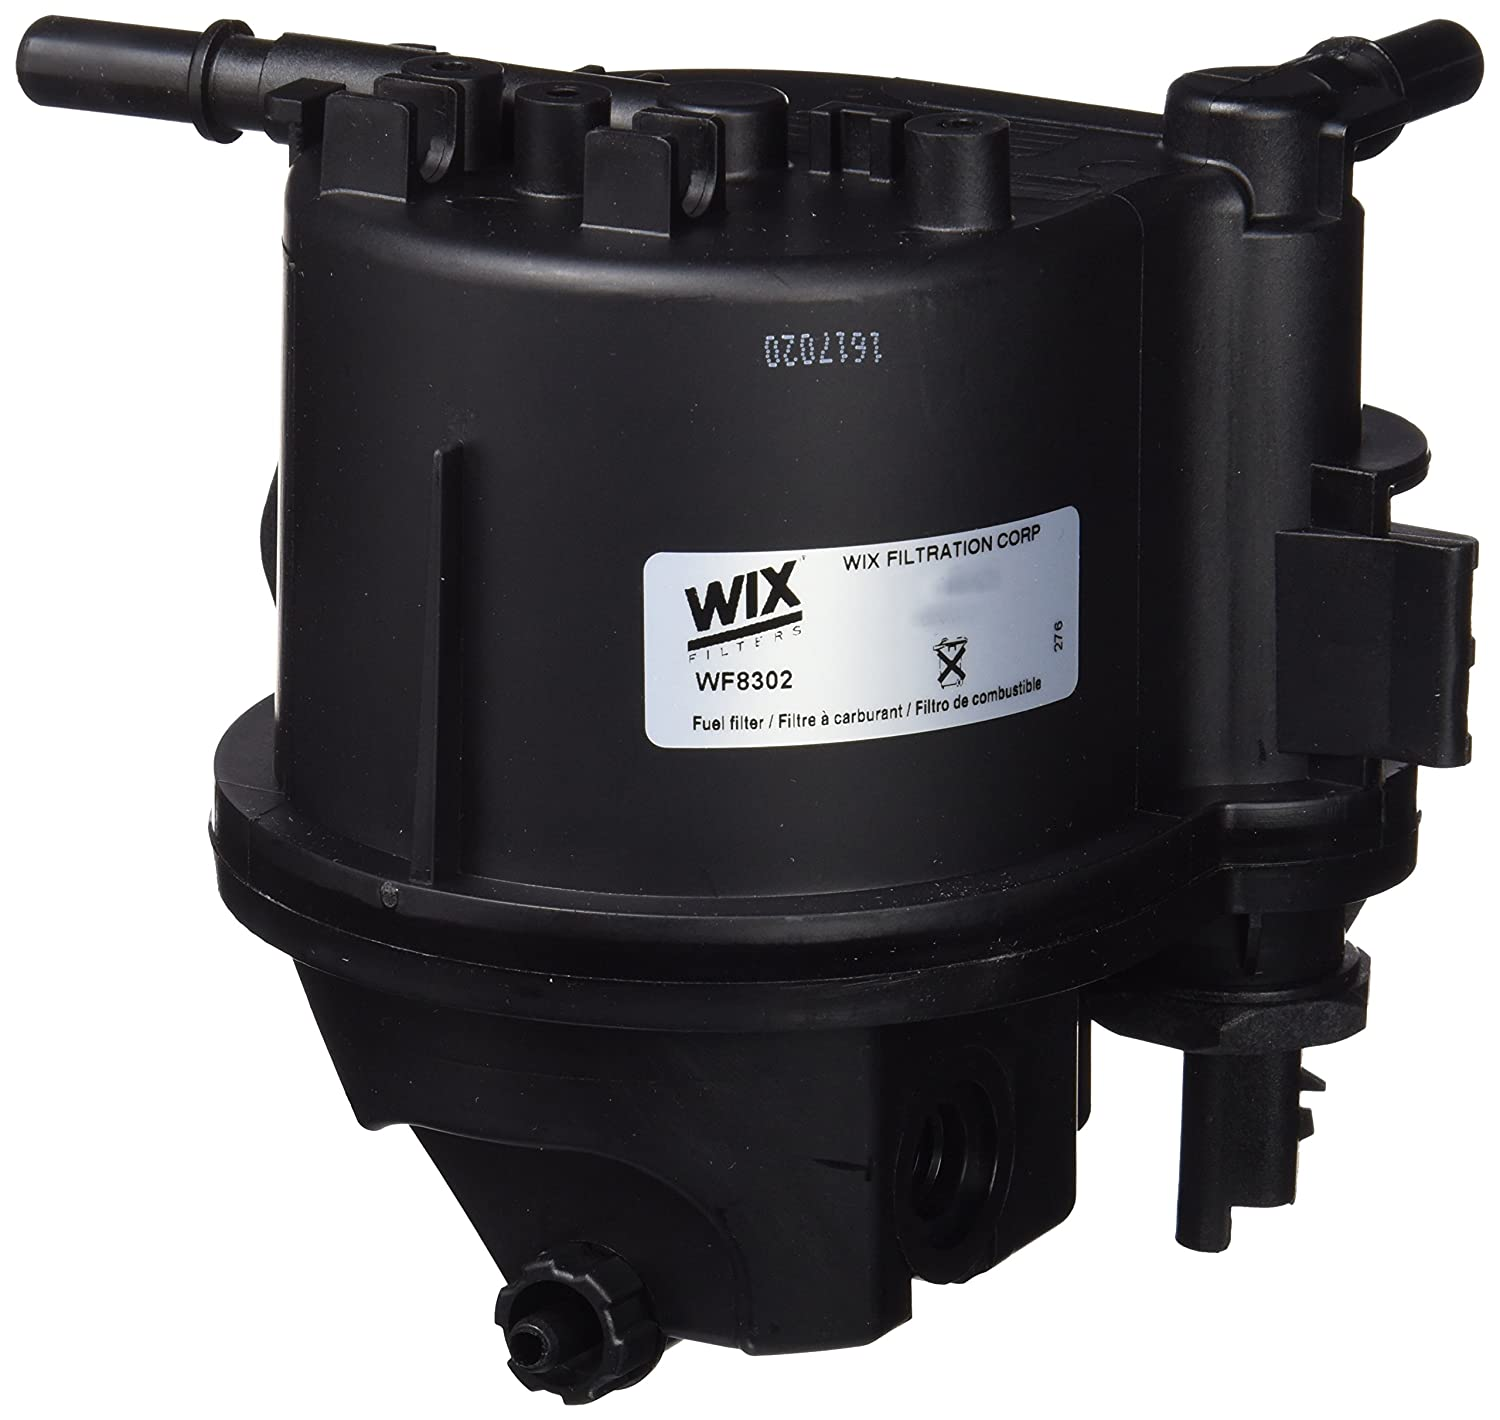 Wix Filter Wf8302 Fuel Car Motorbike 2009 Ford Fusion